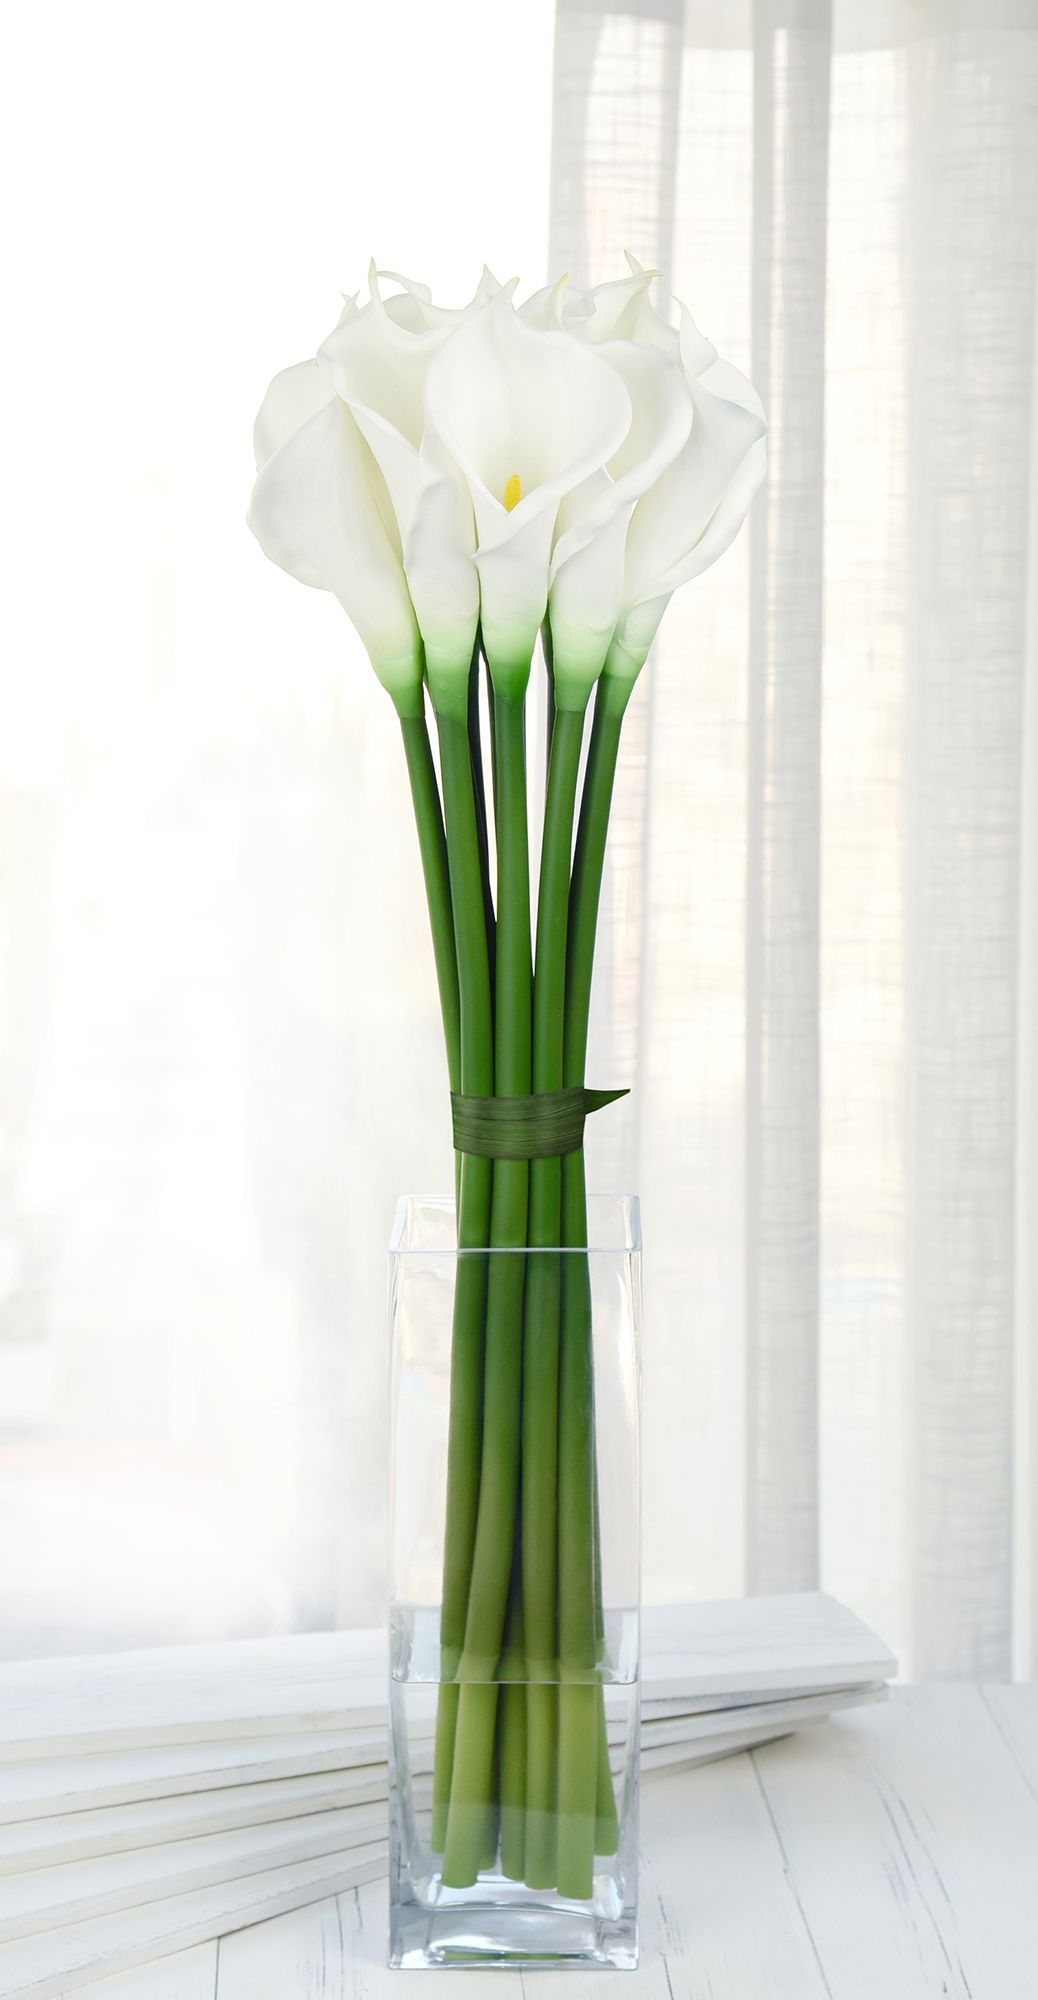 Fiveseasonstuff 6 Long Stems Of Real Touch Artificial Calla Lily Flowers Bouquet For In 2020 Modern Flower Arrangements Calla Lily Flowers Flower Arrangements Simple